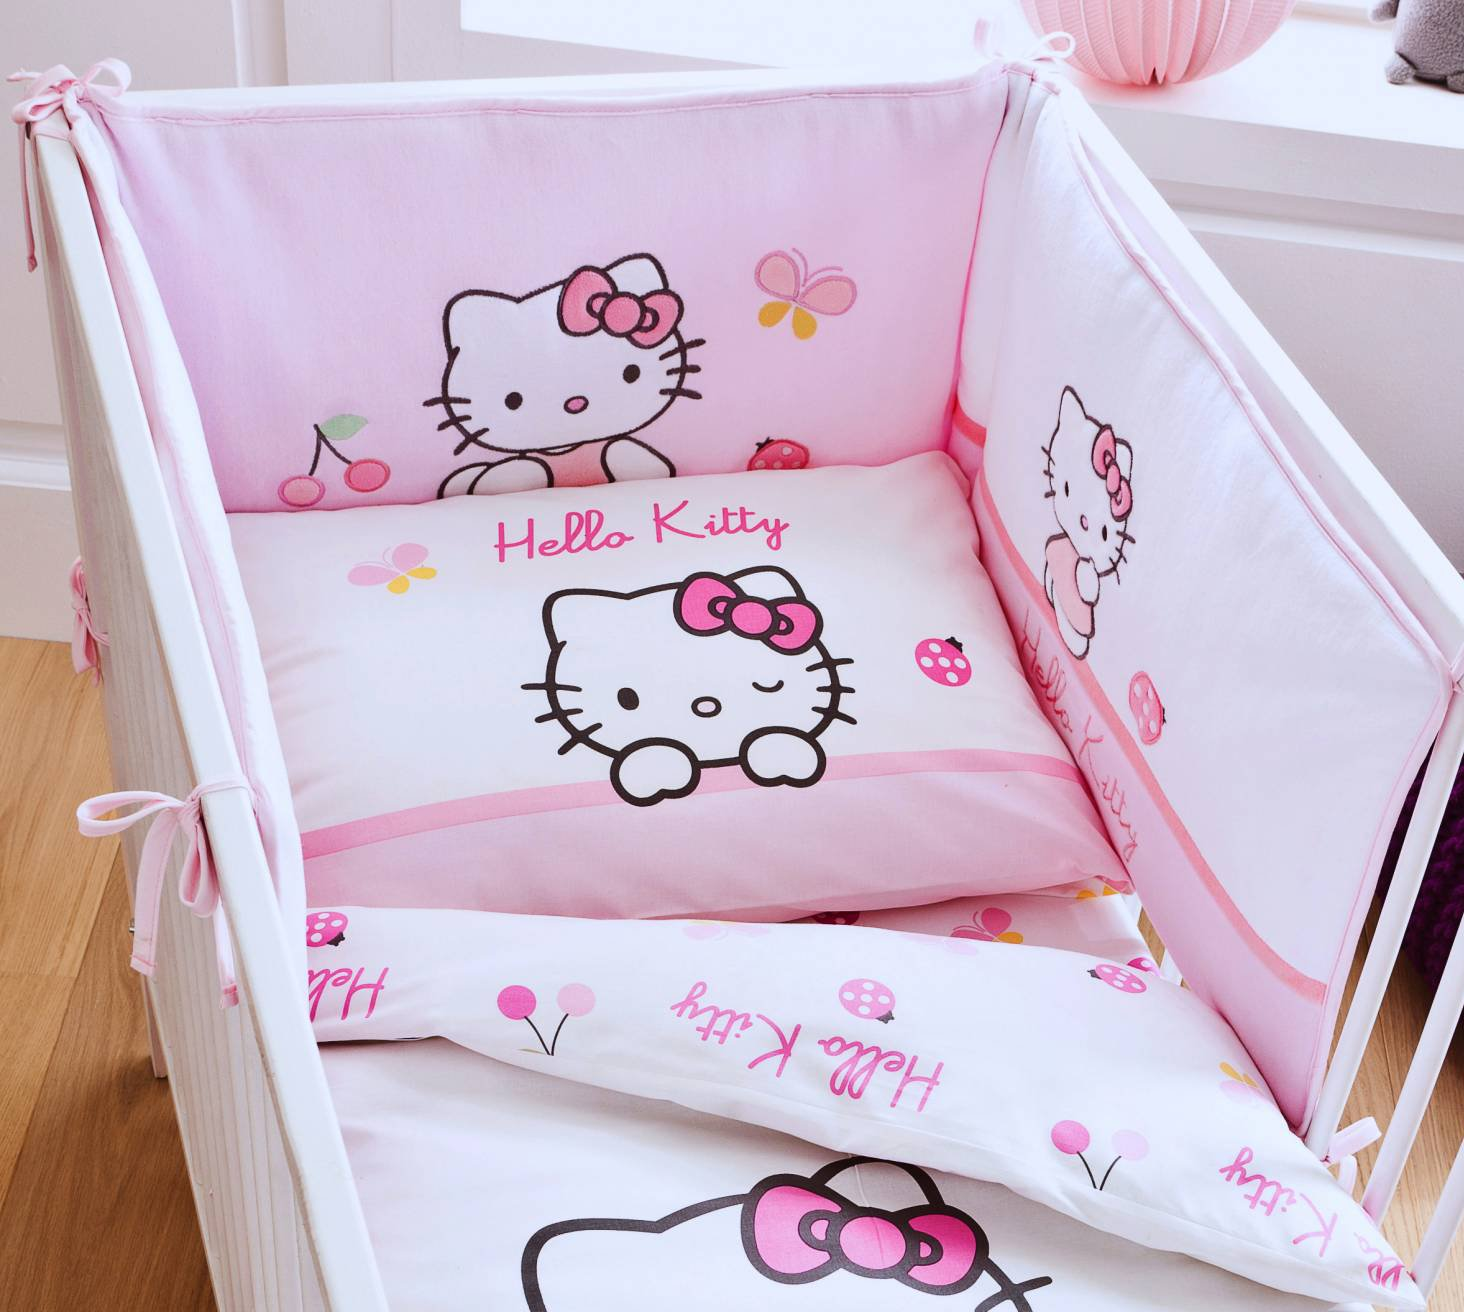 Tour de lit hello kitty 40 x 180 cm coccinelle - Decoration hello kitty pour chambre bebe ...